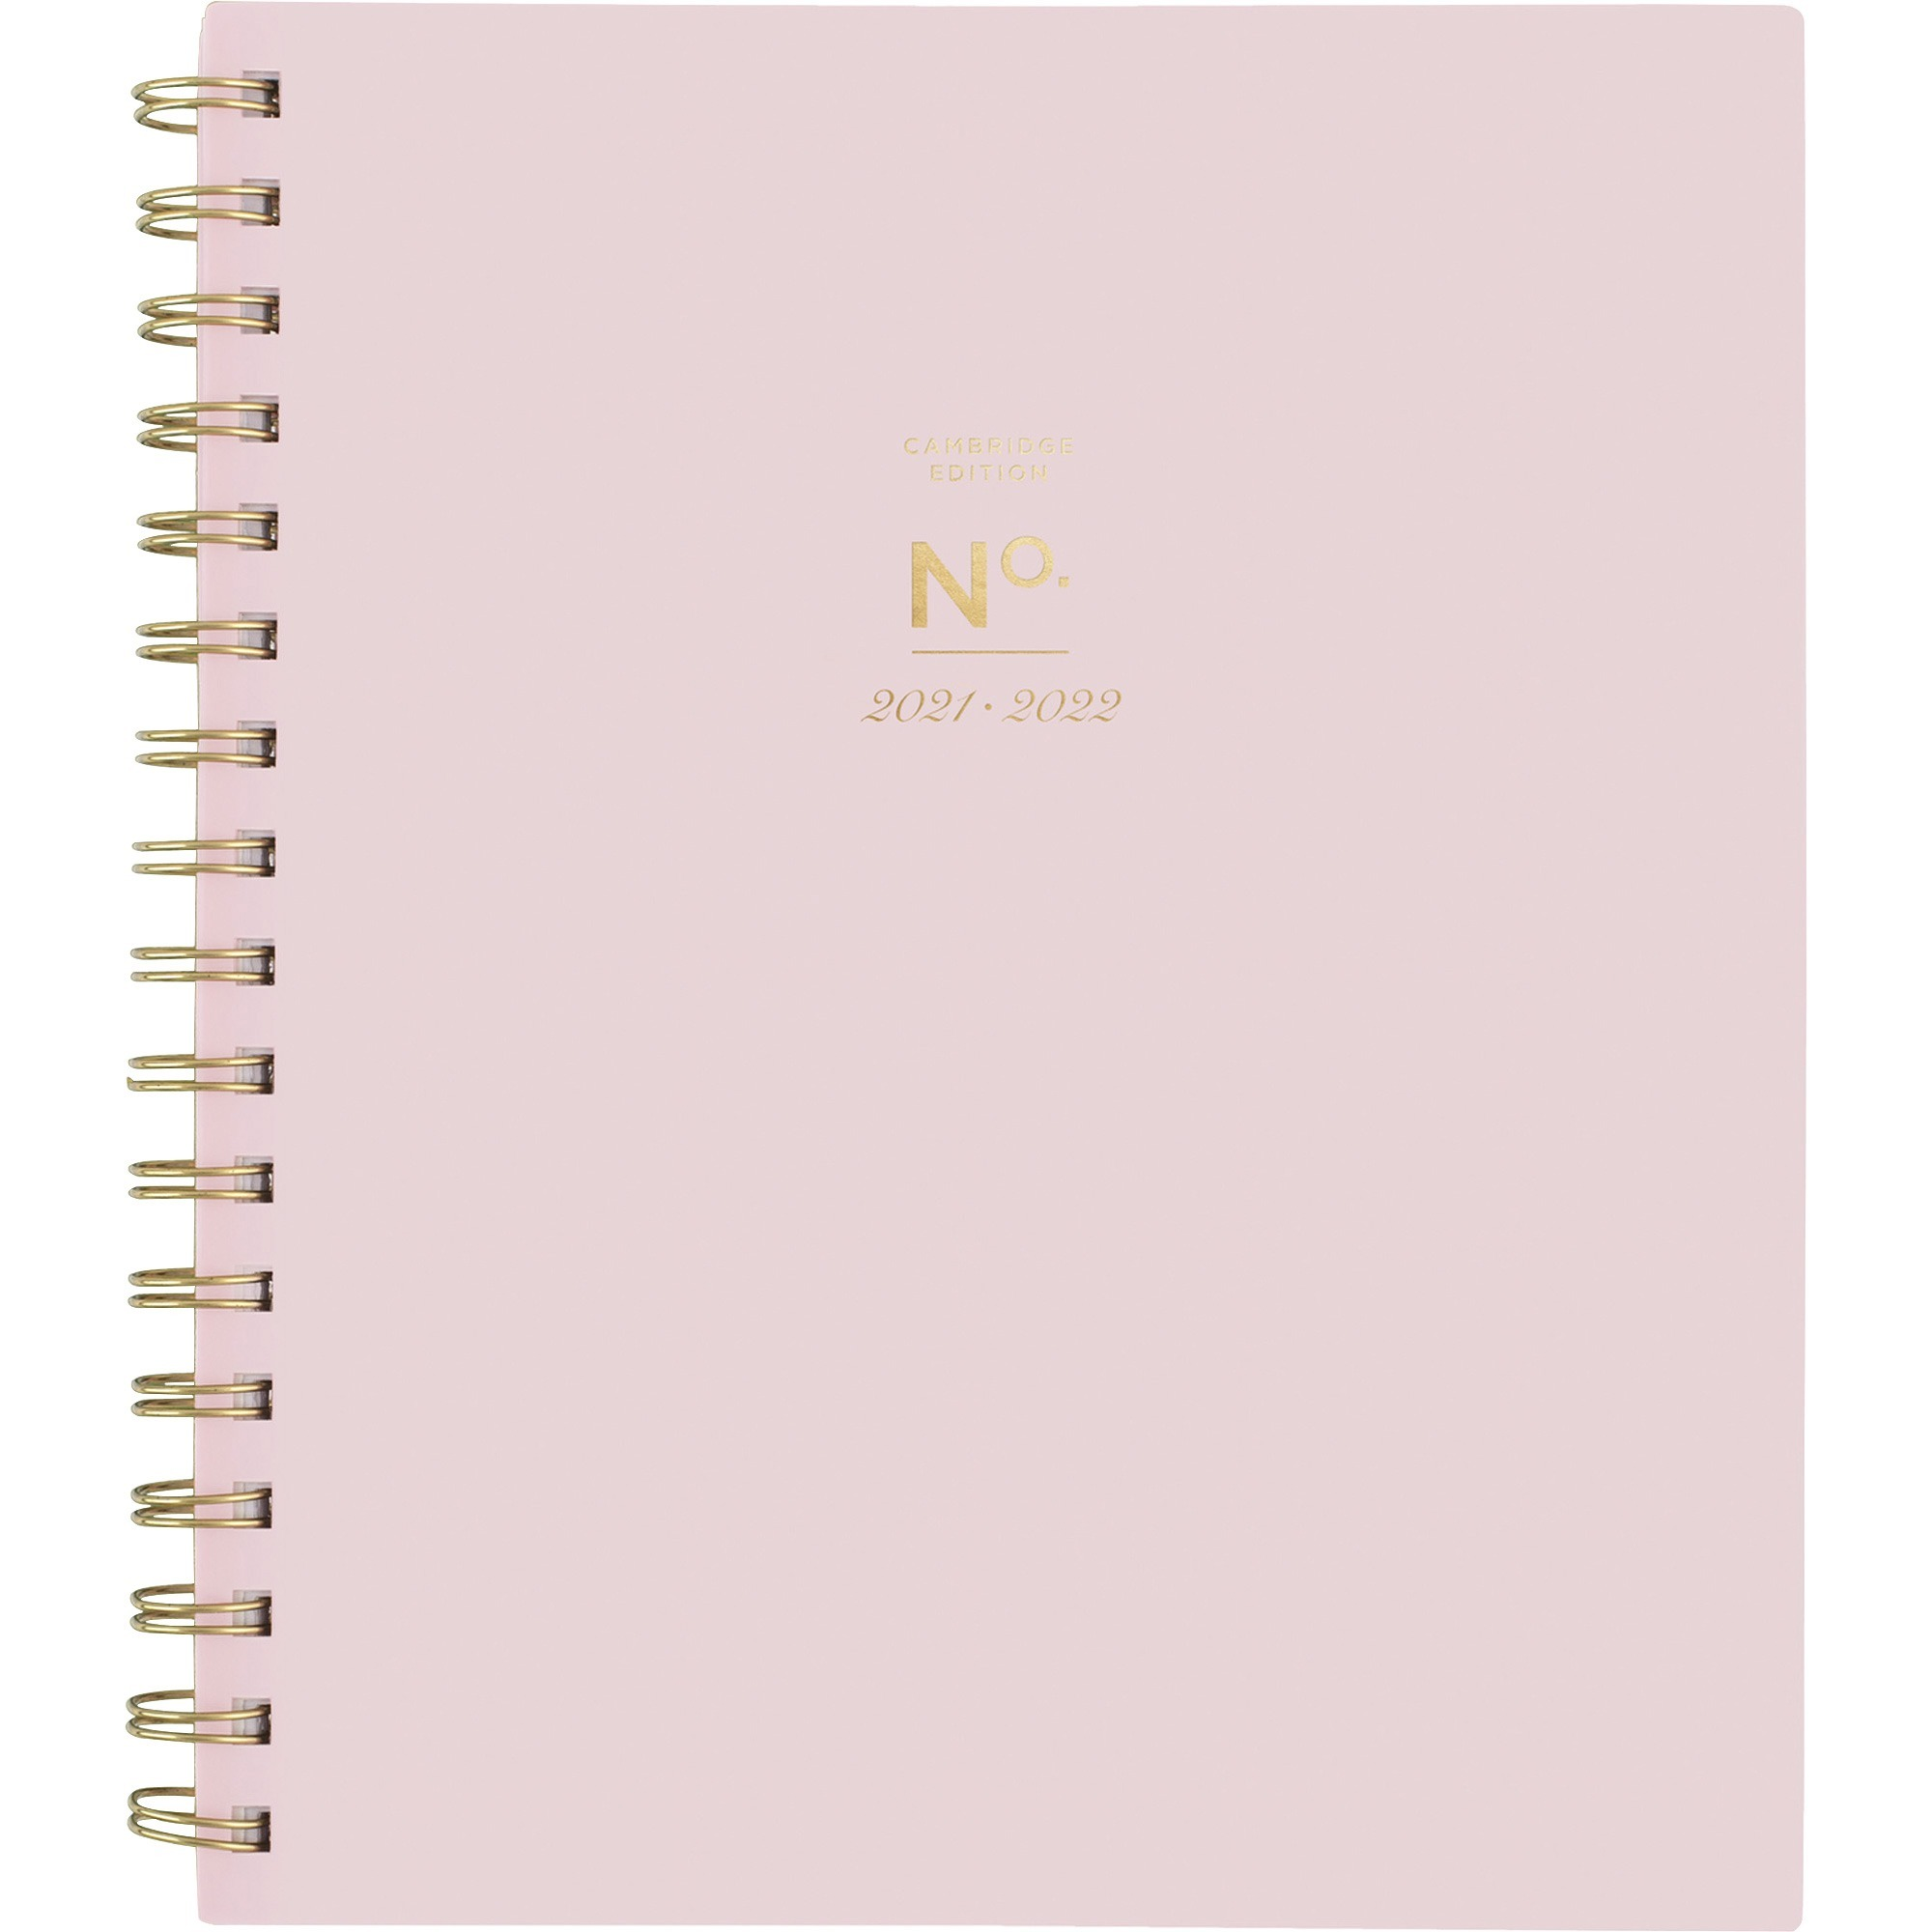 At-A-Glance WorkStyle 7x9 Academic Planner - Academic/Professional - Weekly, Monthly - 1 Year - July till June - 1 Week, 1 Month Double Page Layout - Twin Wire - Gold - Pink - 7